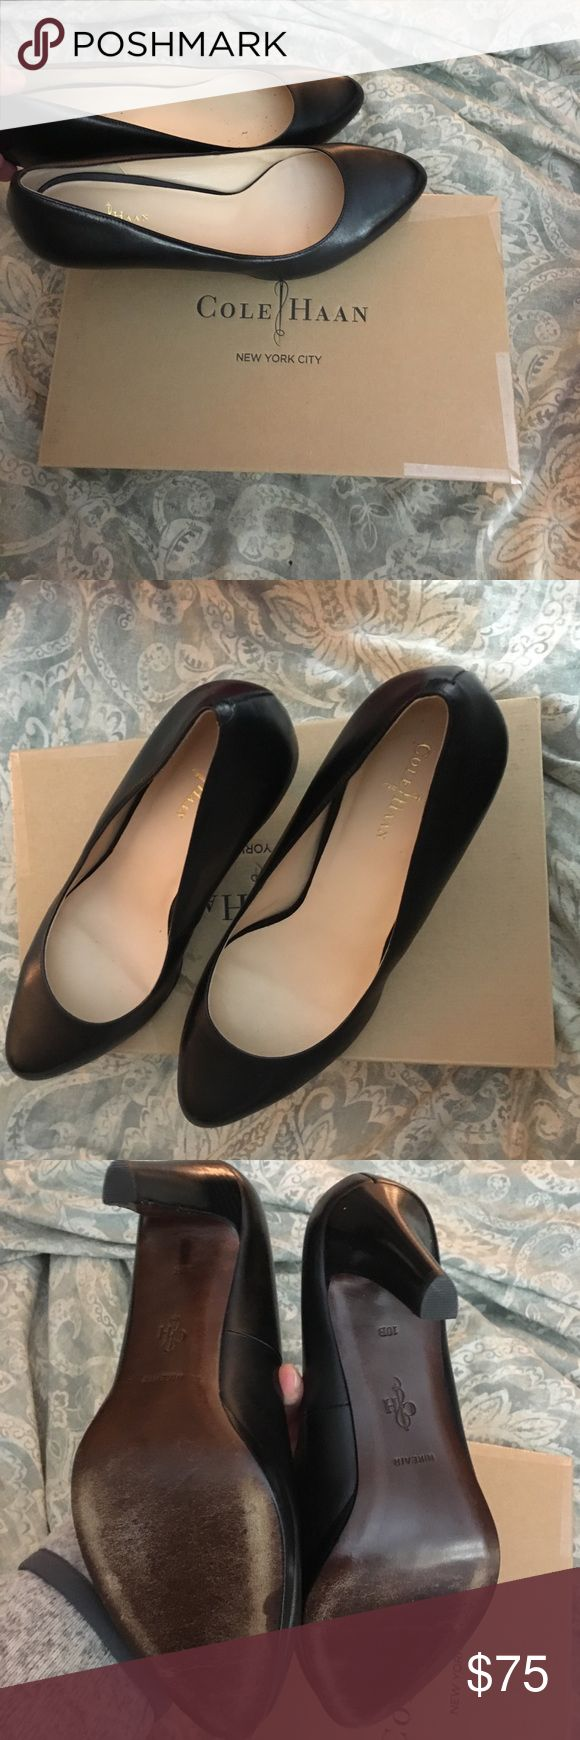 "Like new Cole Haan Air Margot Pump EUC Cole Haan Air Margot Pump in black leather. They most comfortable heels ever!! So I bought 3 pairs and that was a little excessive so I'm selling these. They have Nike air technology for added comfort, these heels have a 3"" heel. Cole Haan Shoes Heels"